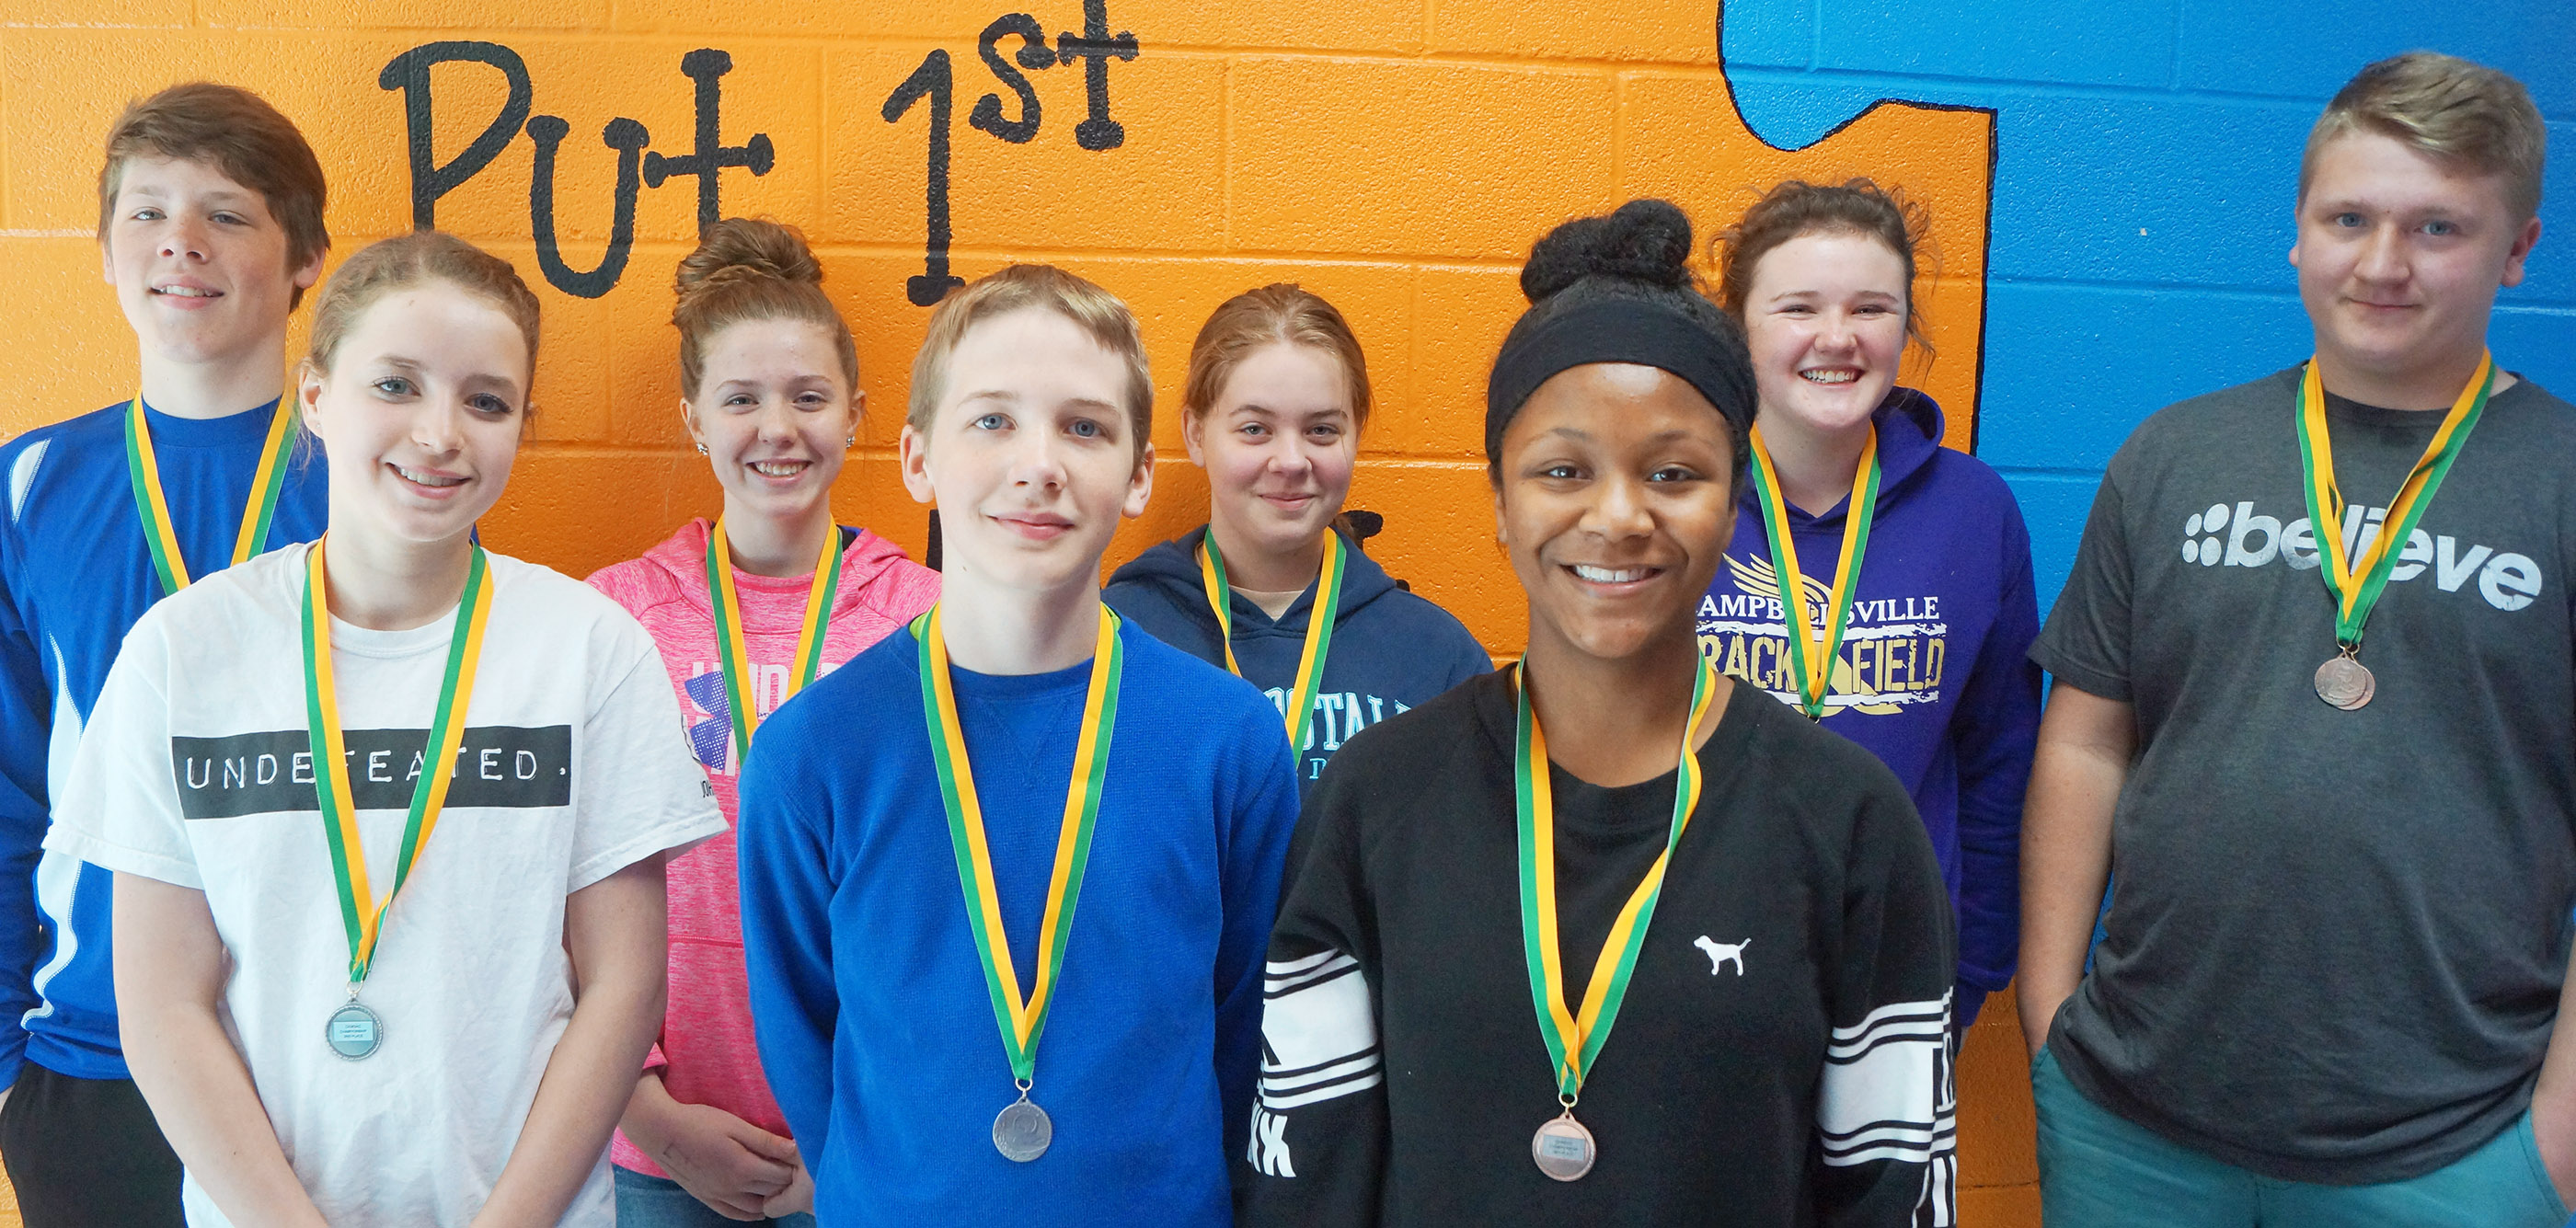 CMS track team members who medaled at the Central Kentucky Middle School Athletic Conference meet on Monday, April 30, are, from left, front, eighth-grader Rylee Petett and sixth-graders Thomas Lucas and Camilla Taylor. Back, eighth-grader Josh Lucas, seventh-grader Alysa Howard, sixth-grader Layla Steen, eighth-grader Abby Brisko and seventh-grader Levi Dicken.